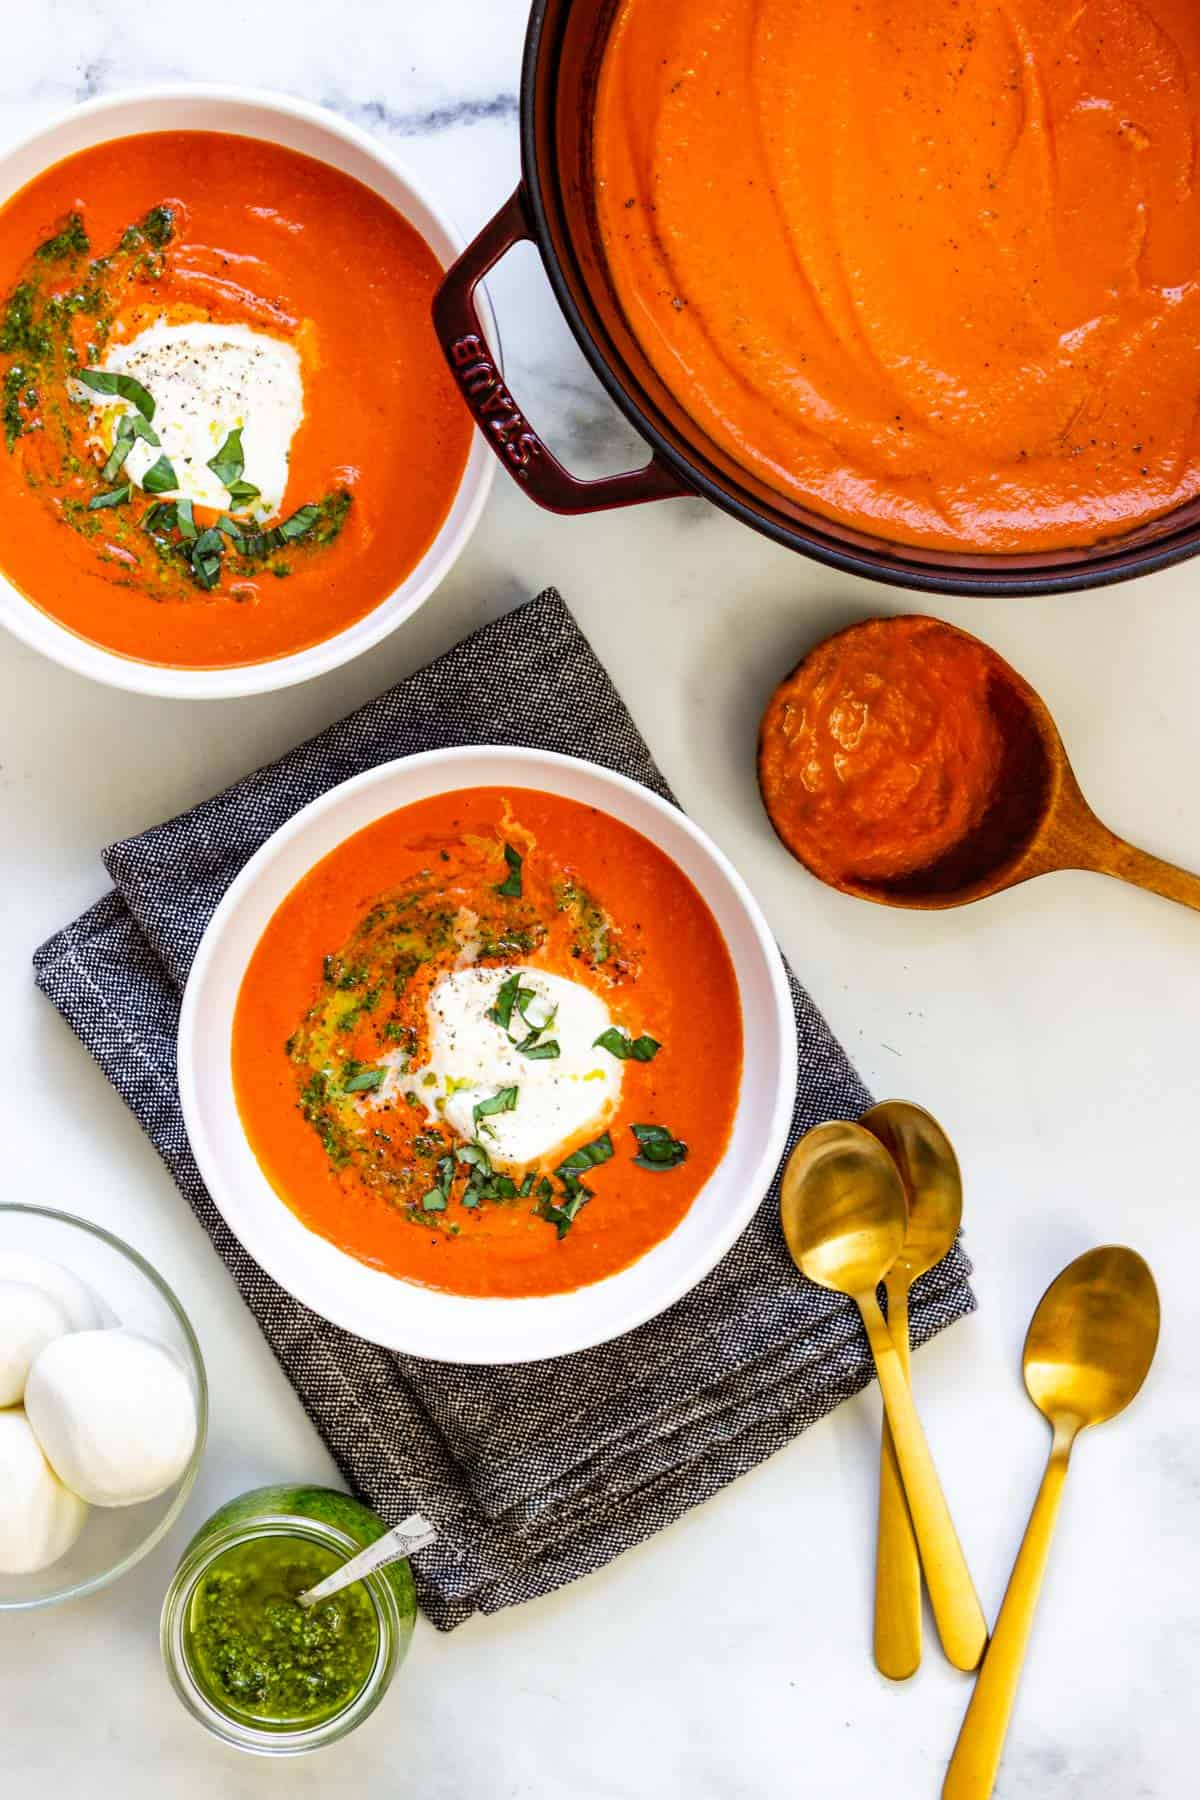 A pot of creamy red pepper tomato soup. Two bowls of soup, a bowl of burrata, and several gold spoons sit on the counter as well.